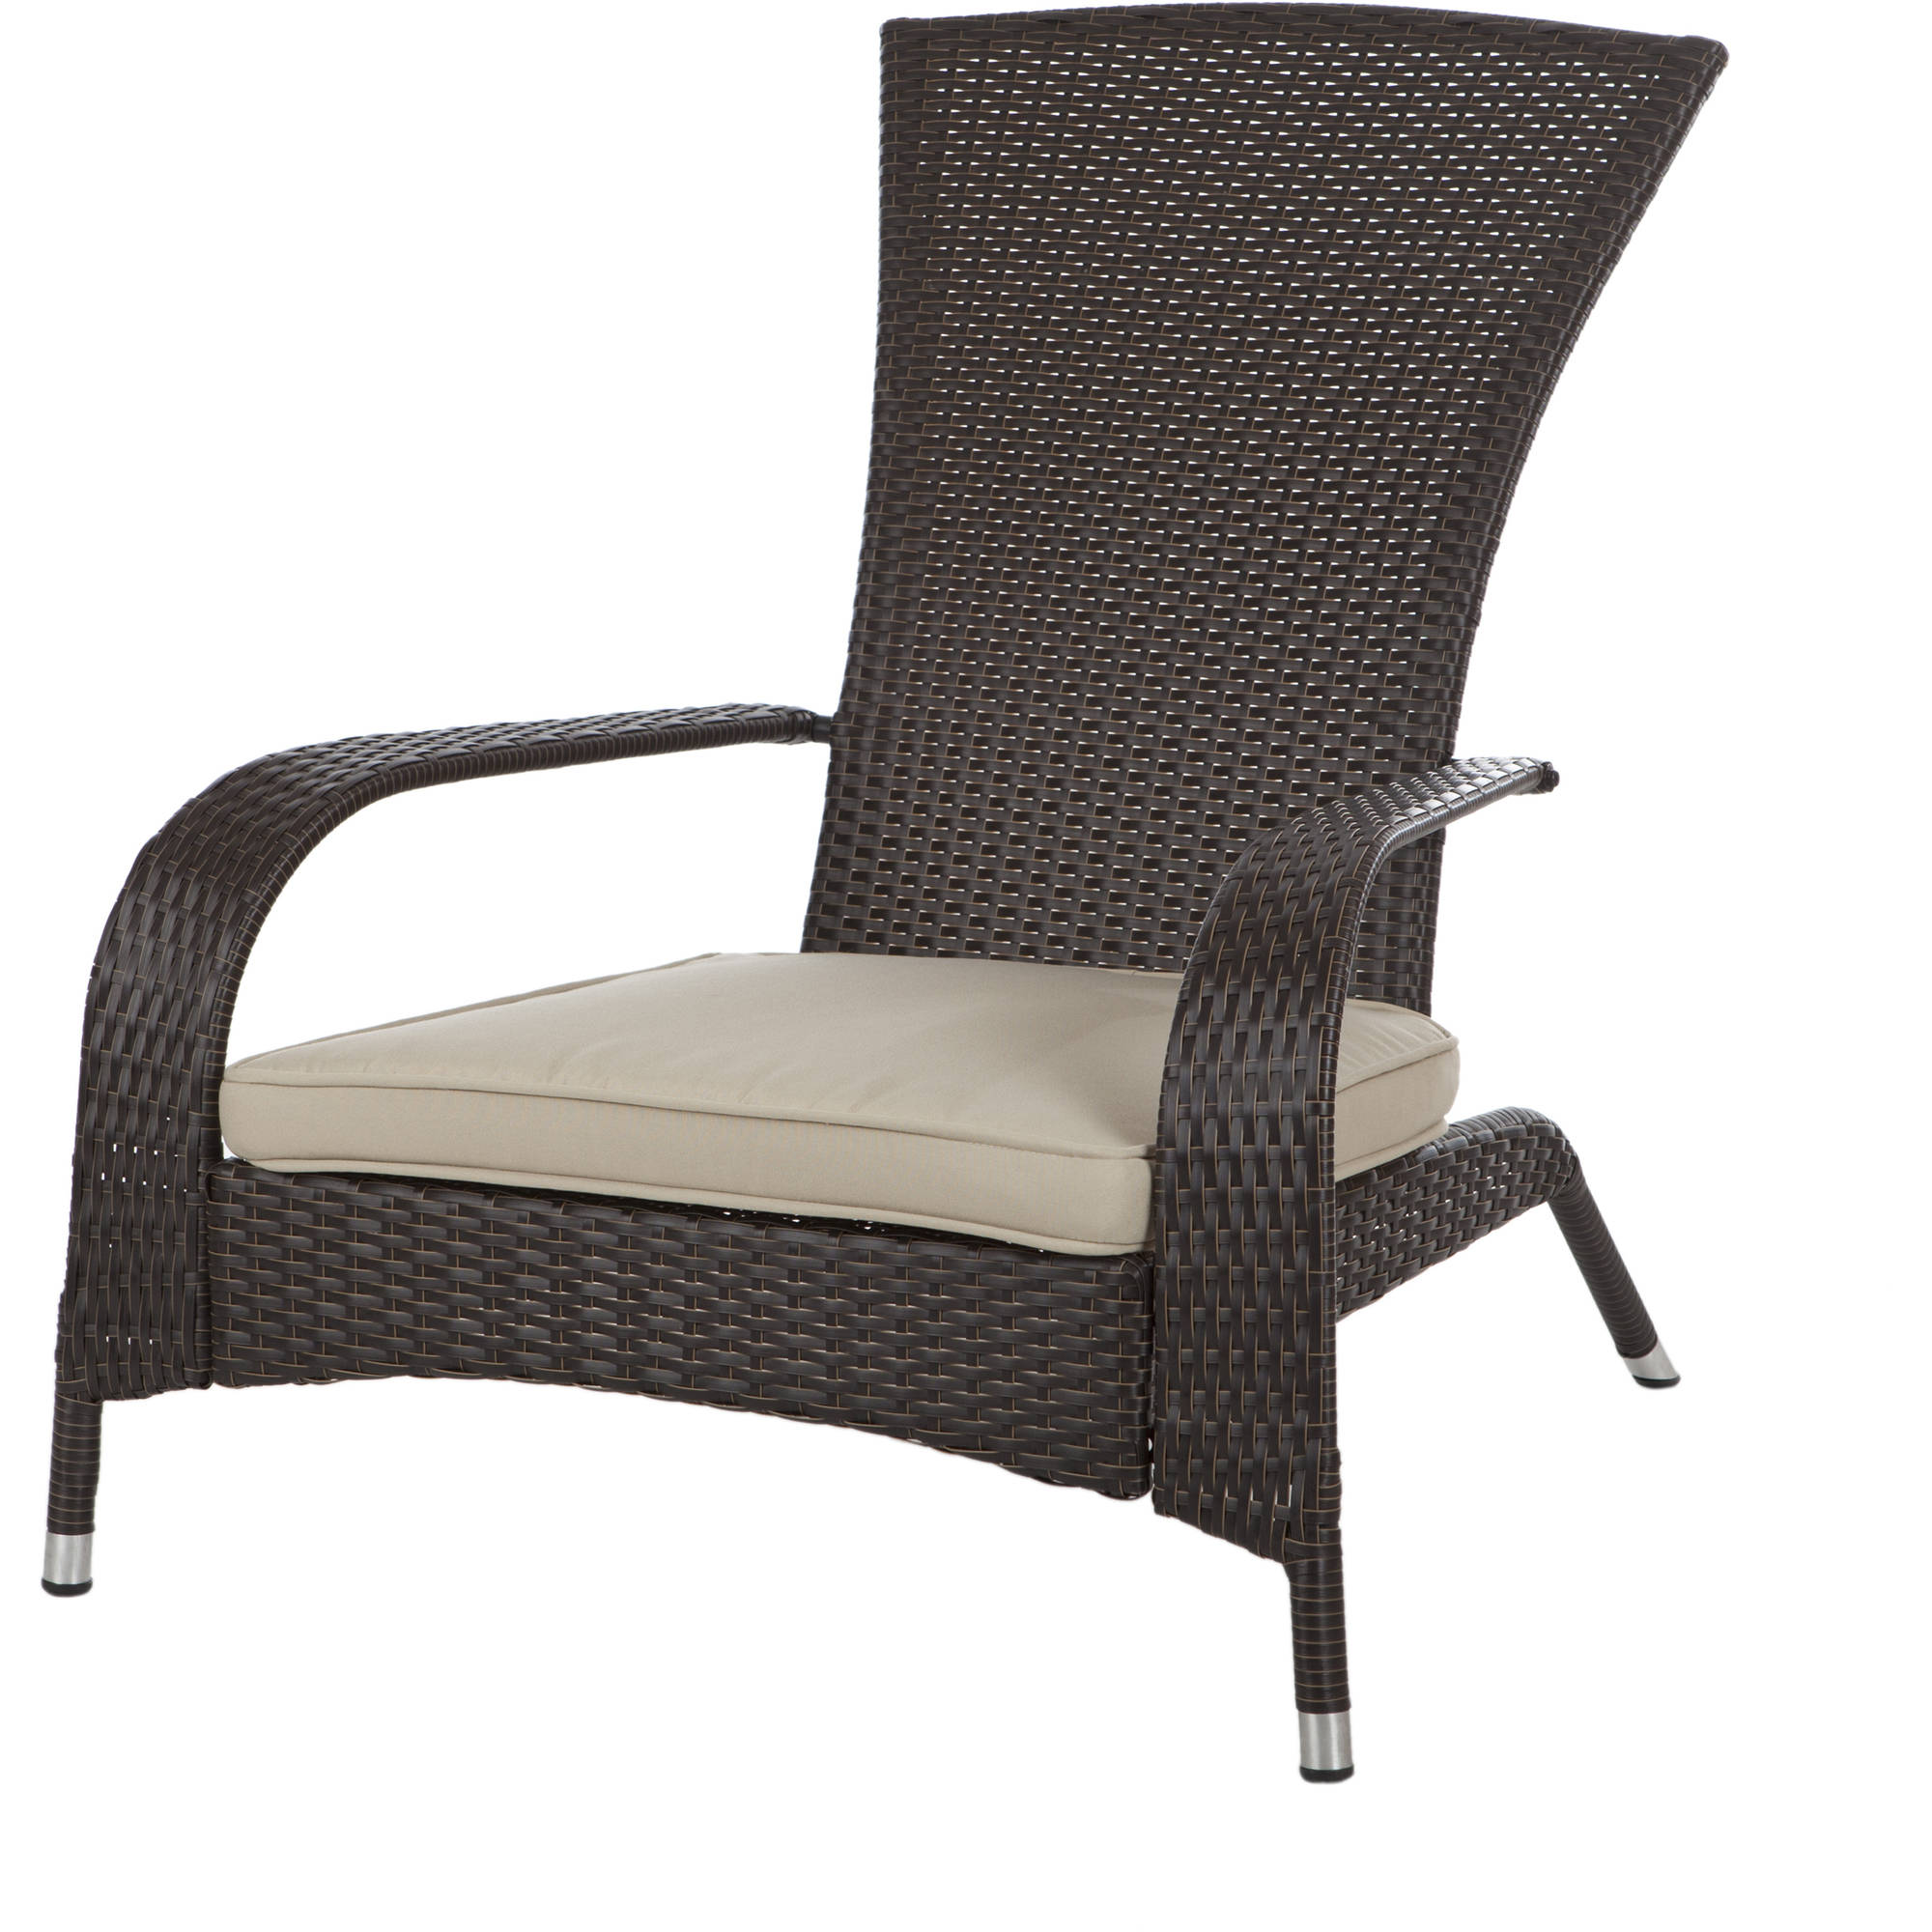 Patio Sense Coconino Wicker Chair